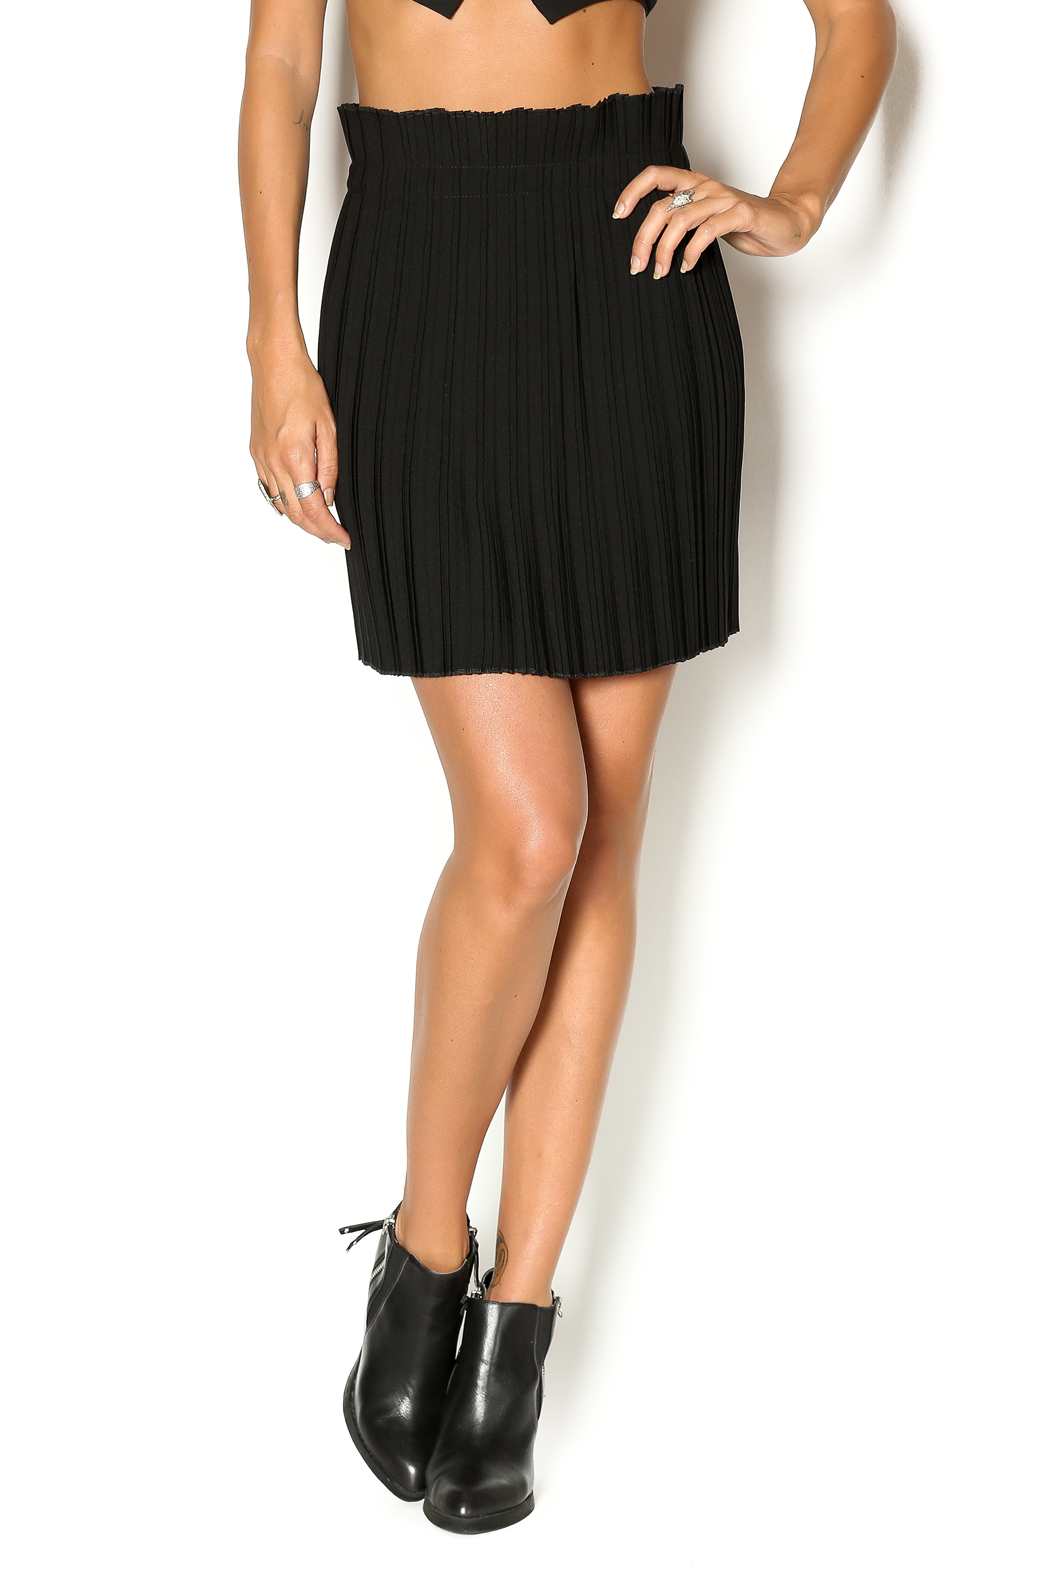 Babel Fair Pleated Mini Skirt from Williamsburg by Babel ...